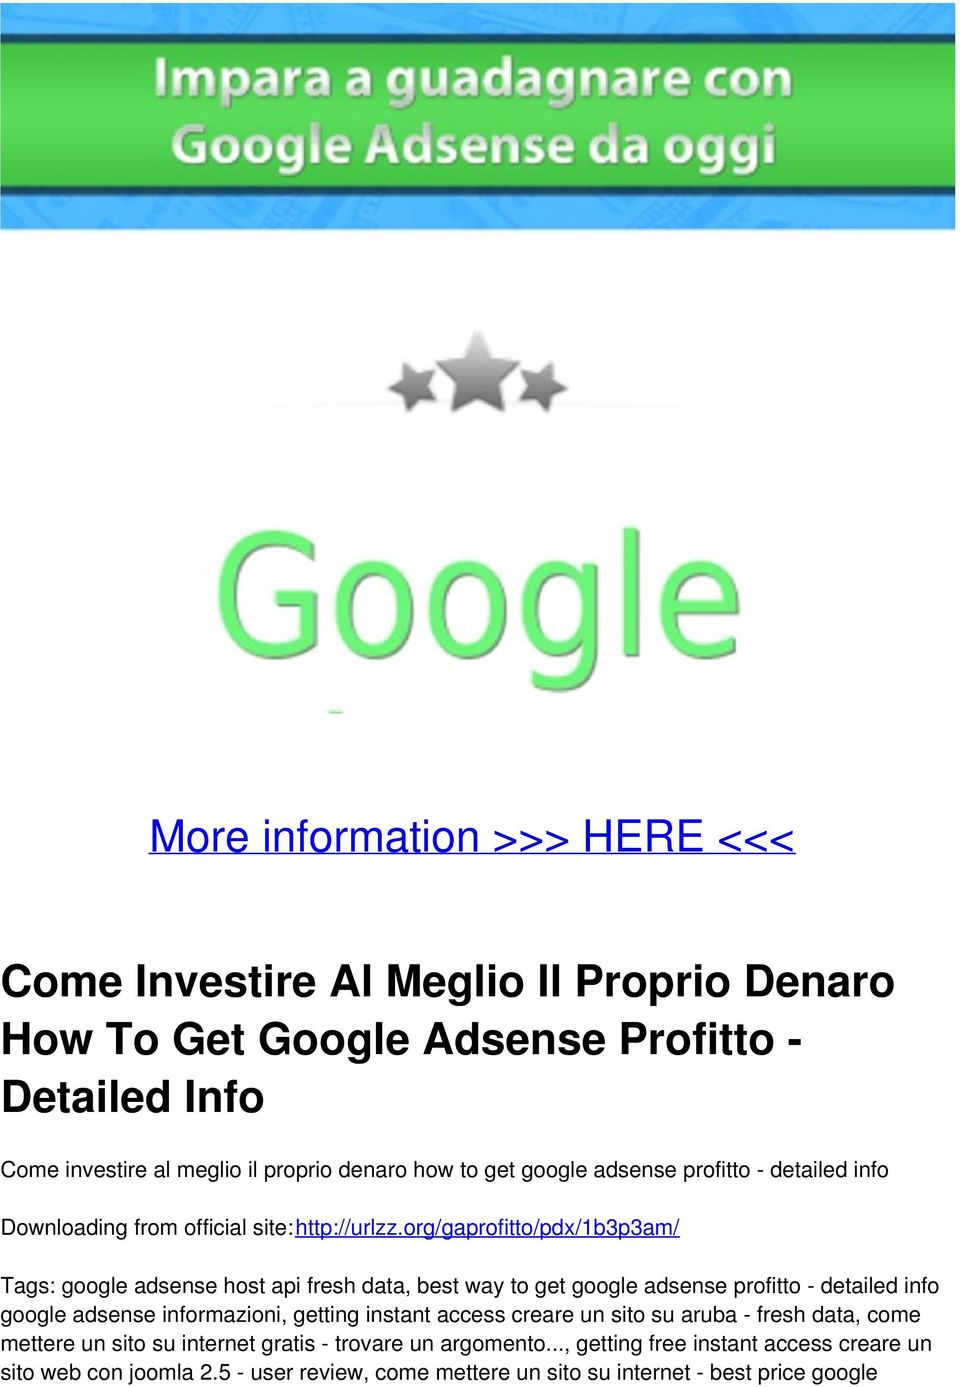 org/gaprofitto/pdx/1b3p3am/ Tags: google adsense host api fresh data, best way to get google adsense profitto - detailed info google adsense informazioni, getting